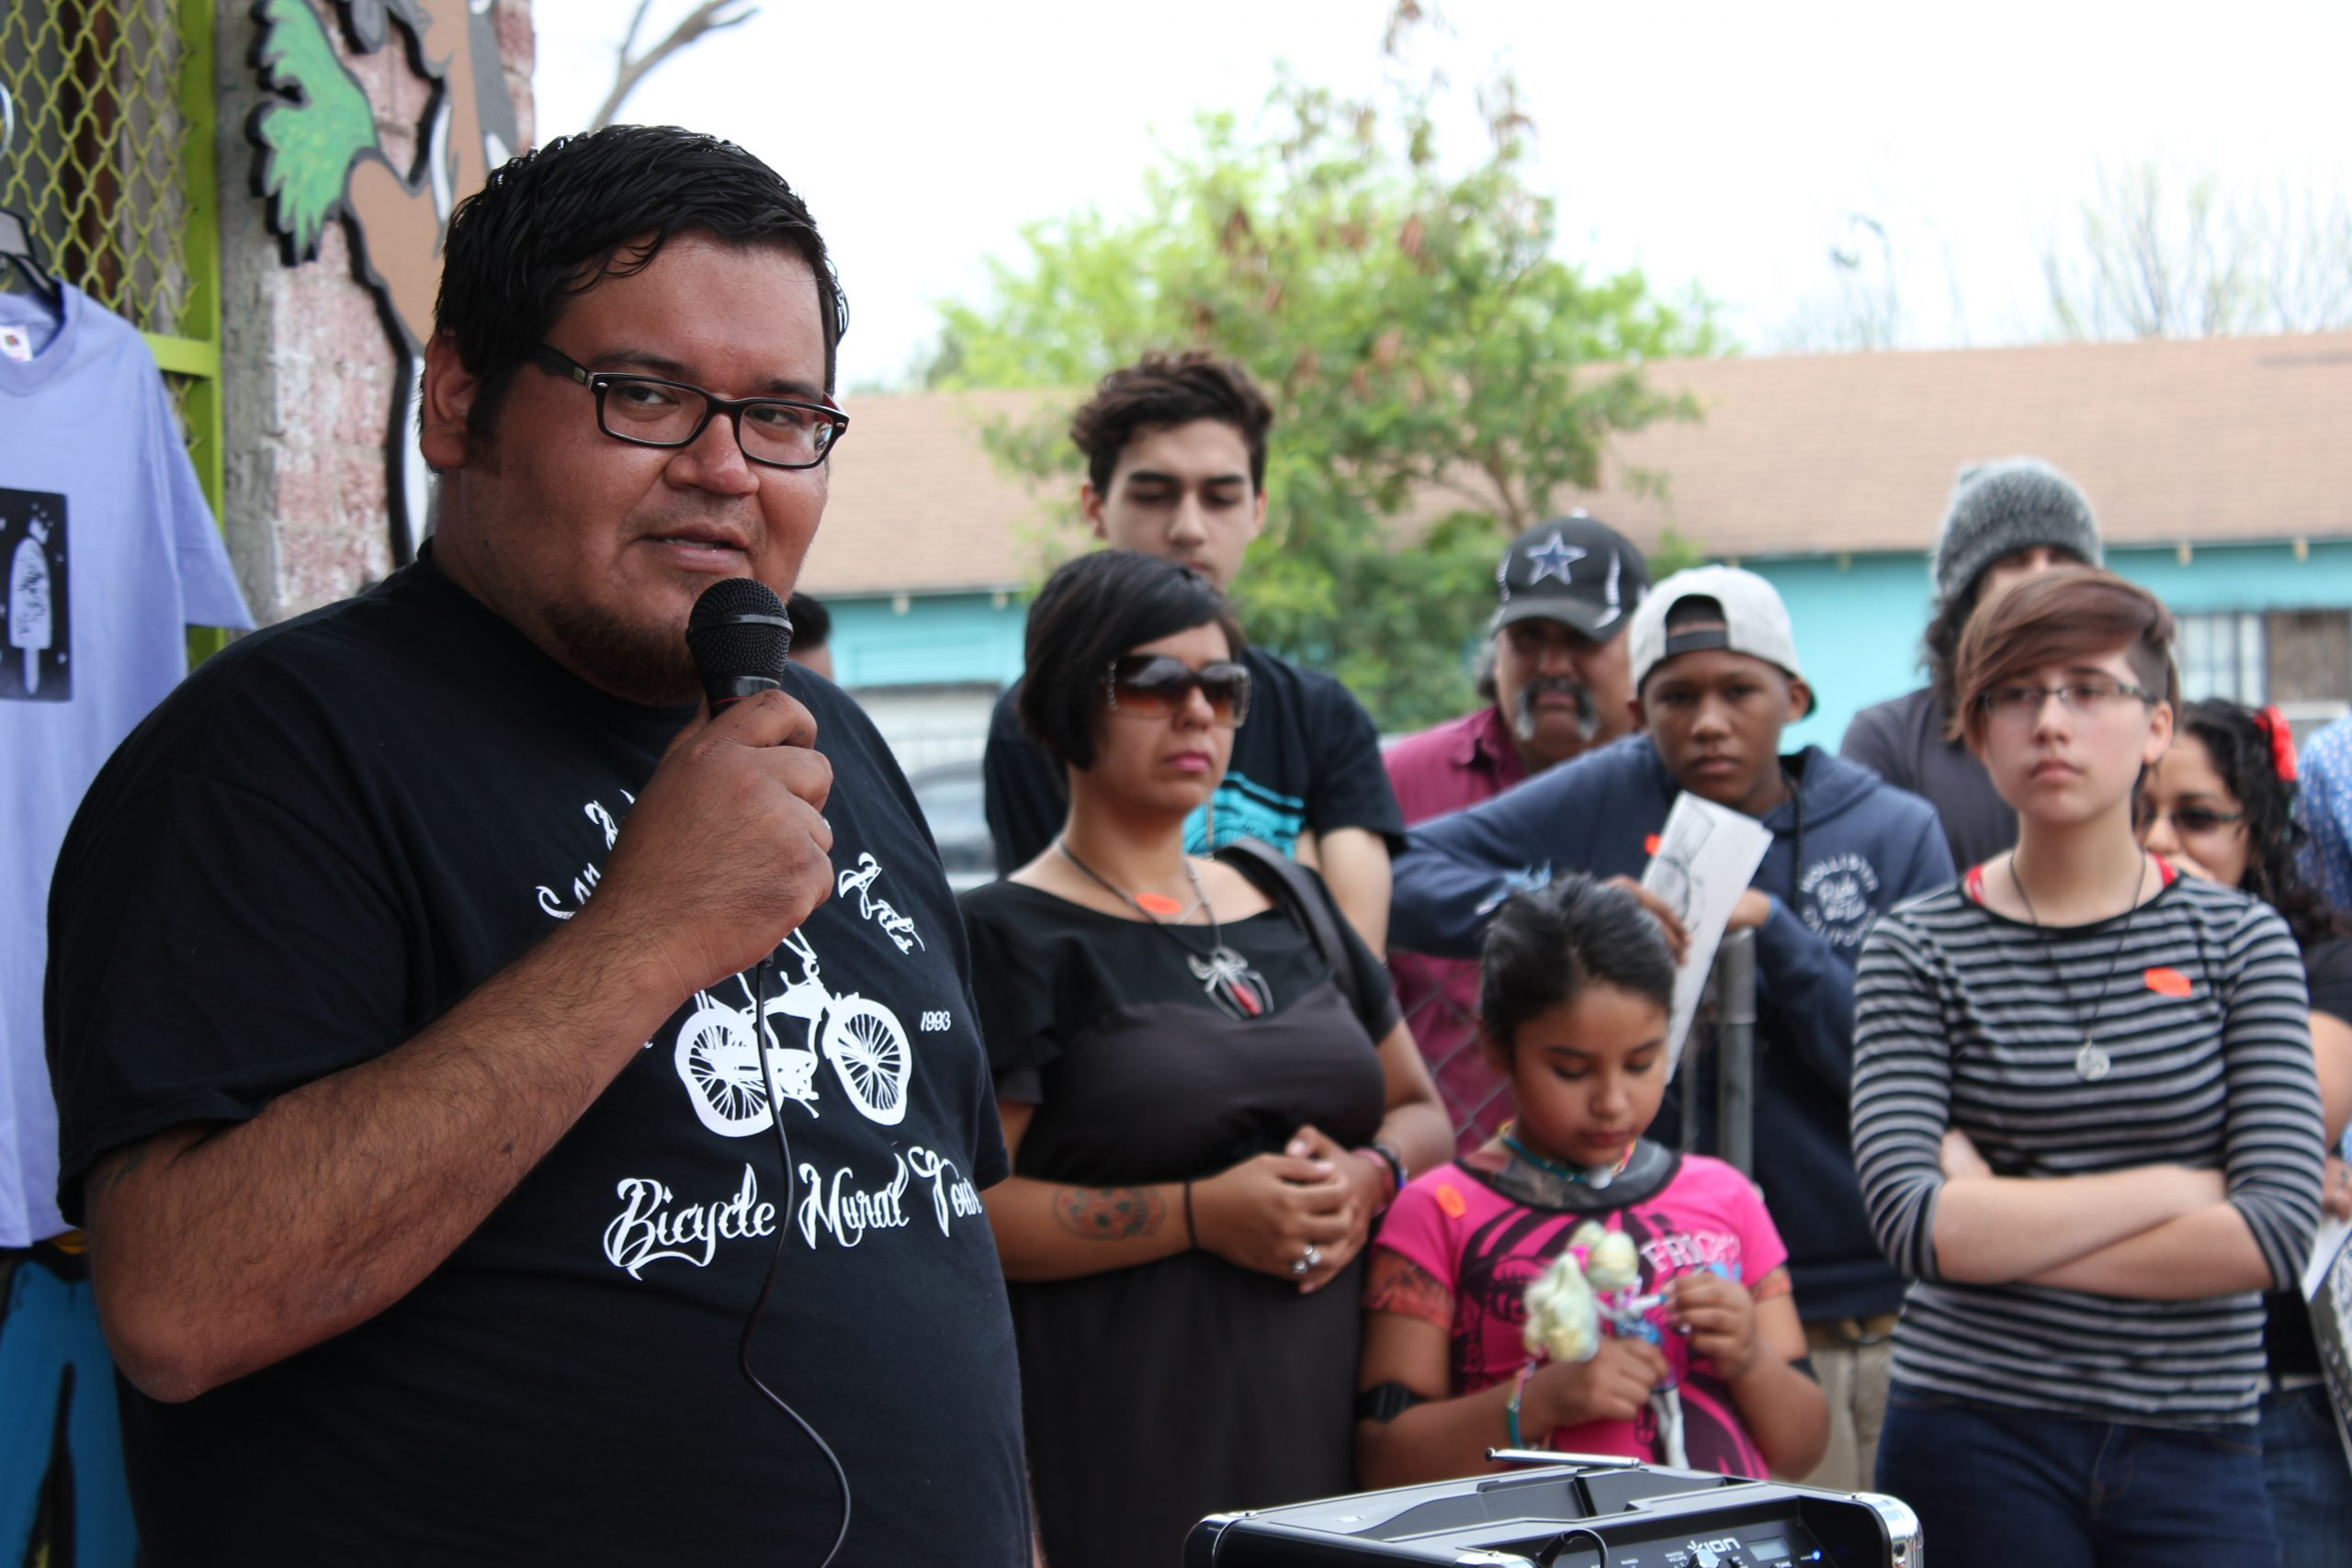 The anticipation. John Medina speaks on the paleta making process at the bike rack unveiling ceremony at San Anto Cultural Arts. Photo by Melanie Robinson.